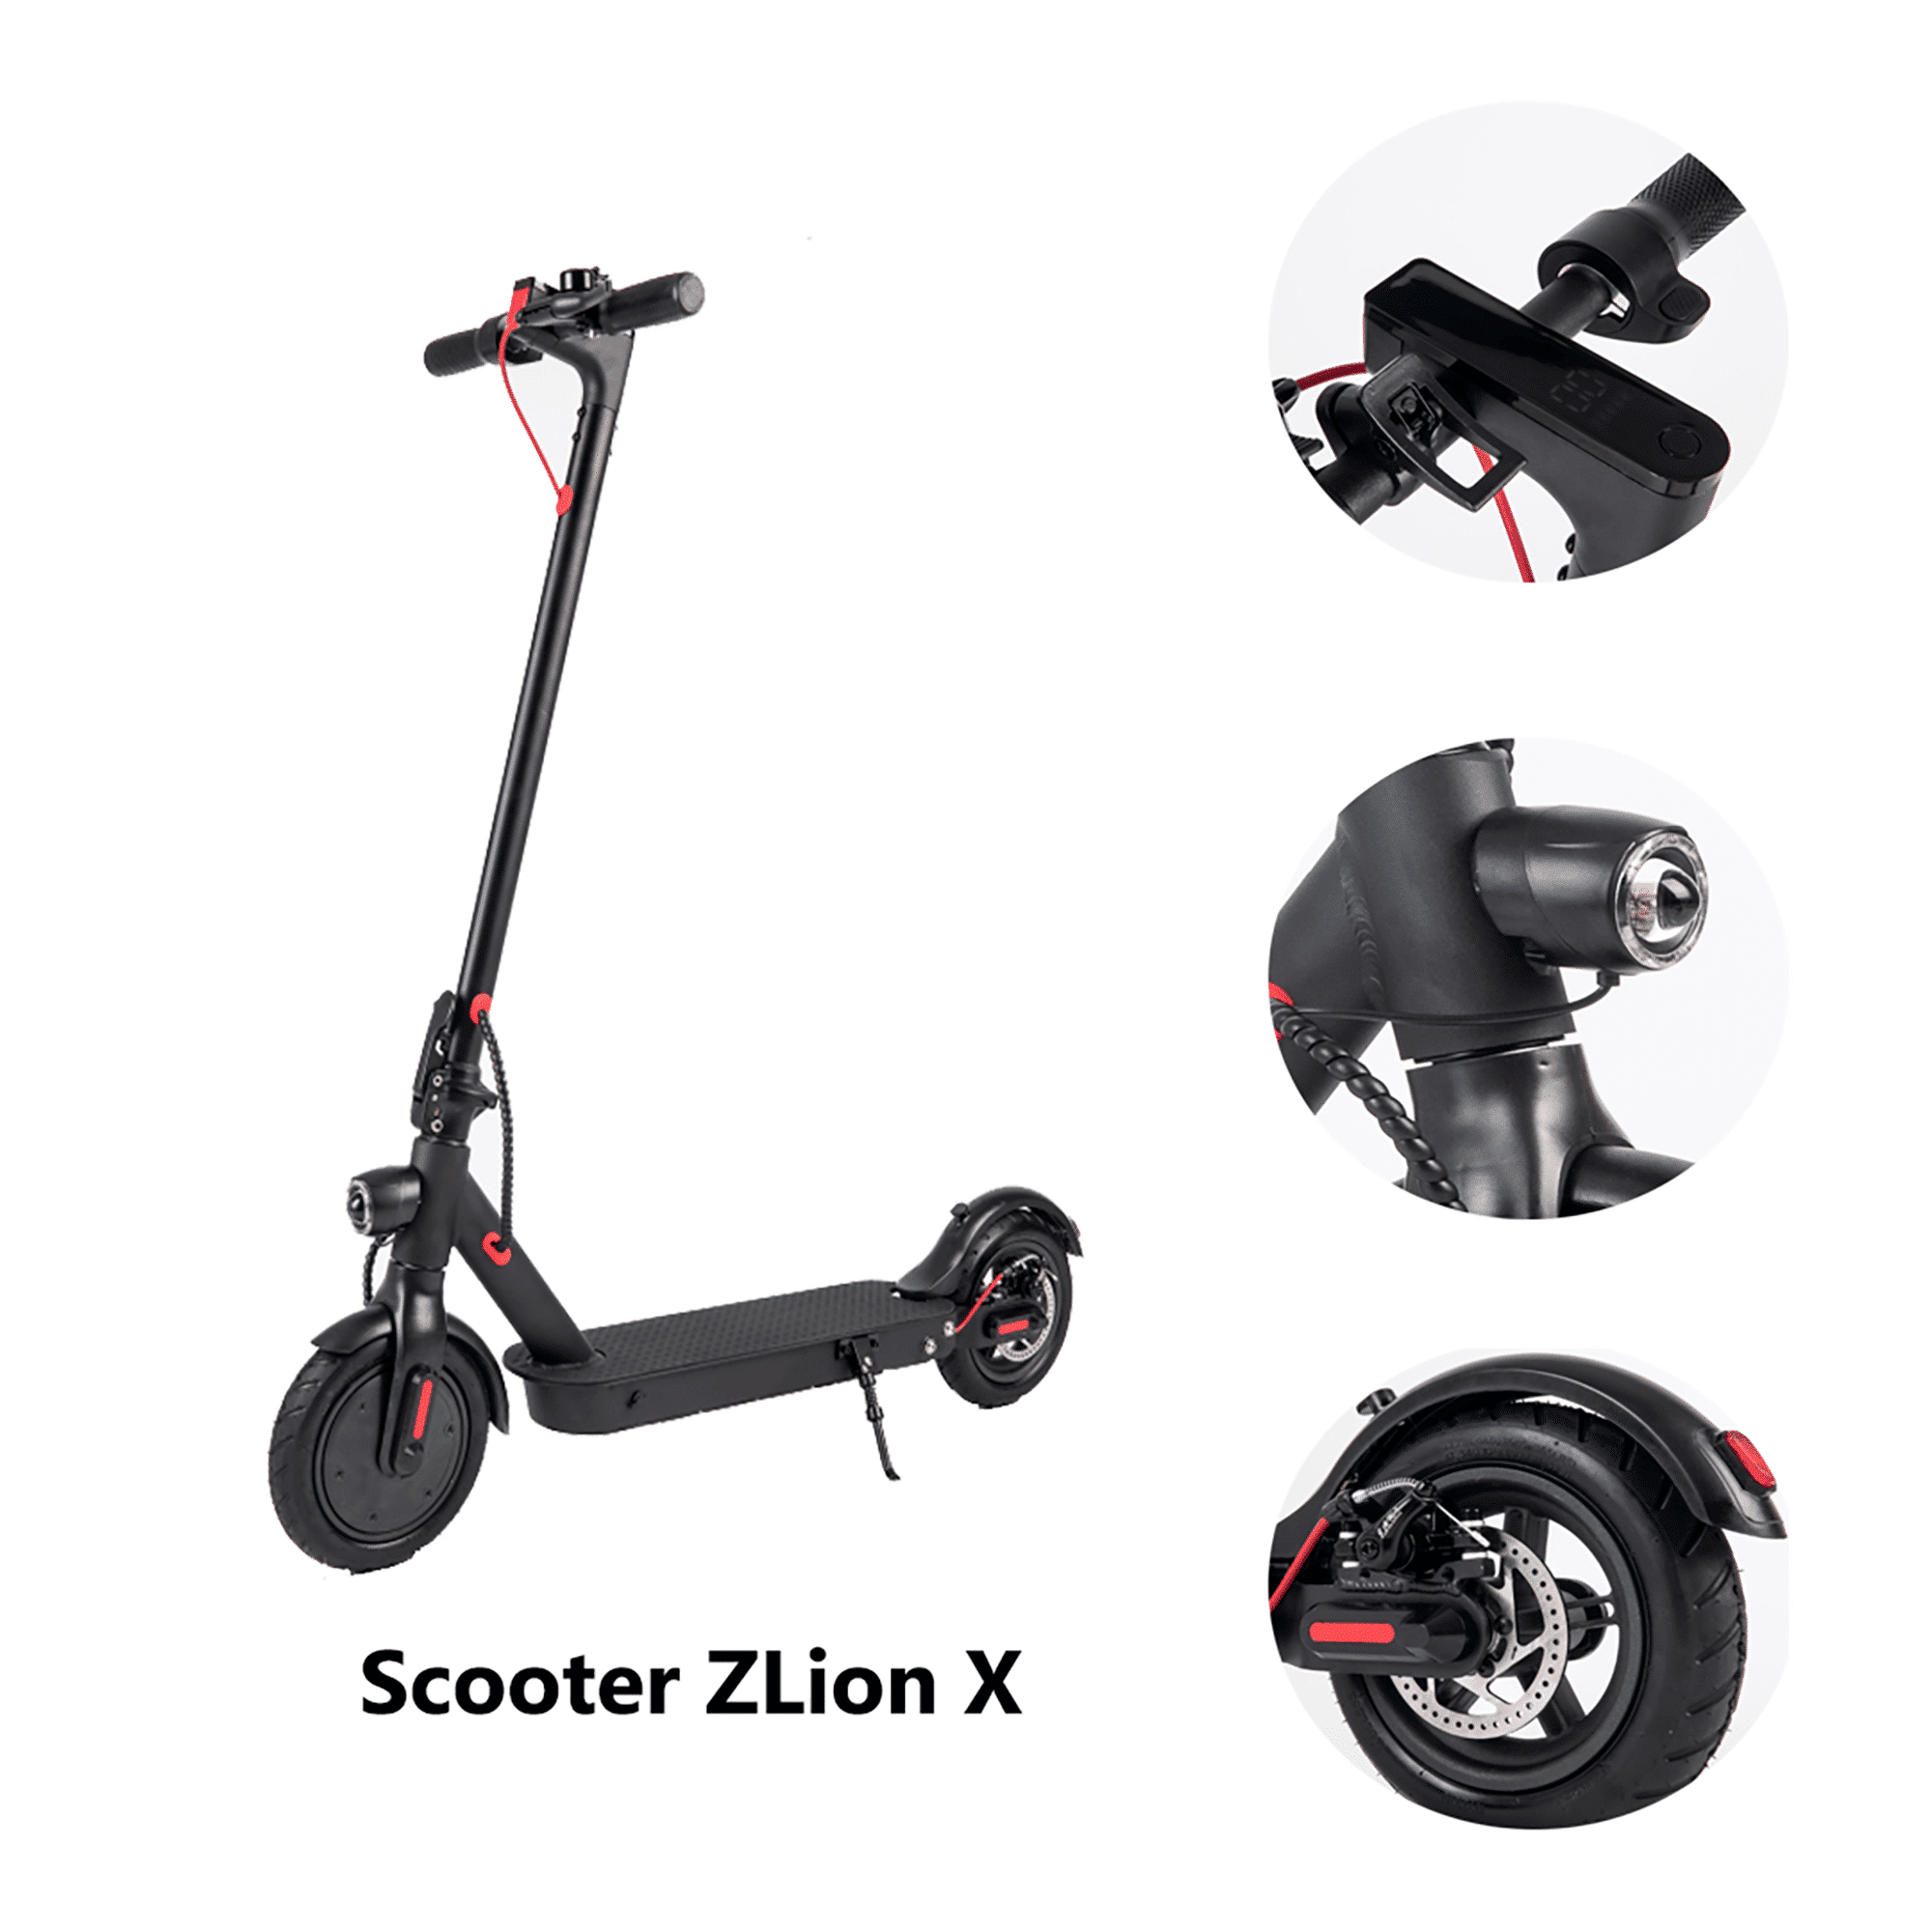 Scooter ZLion X - Zwheel